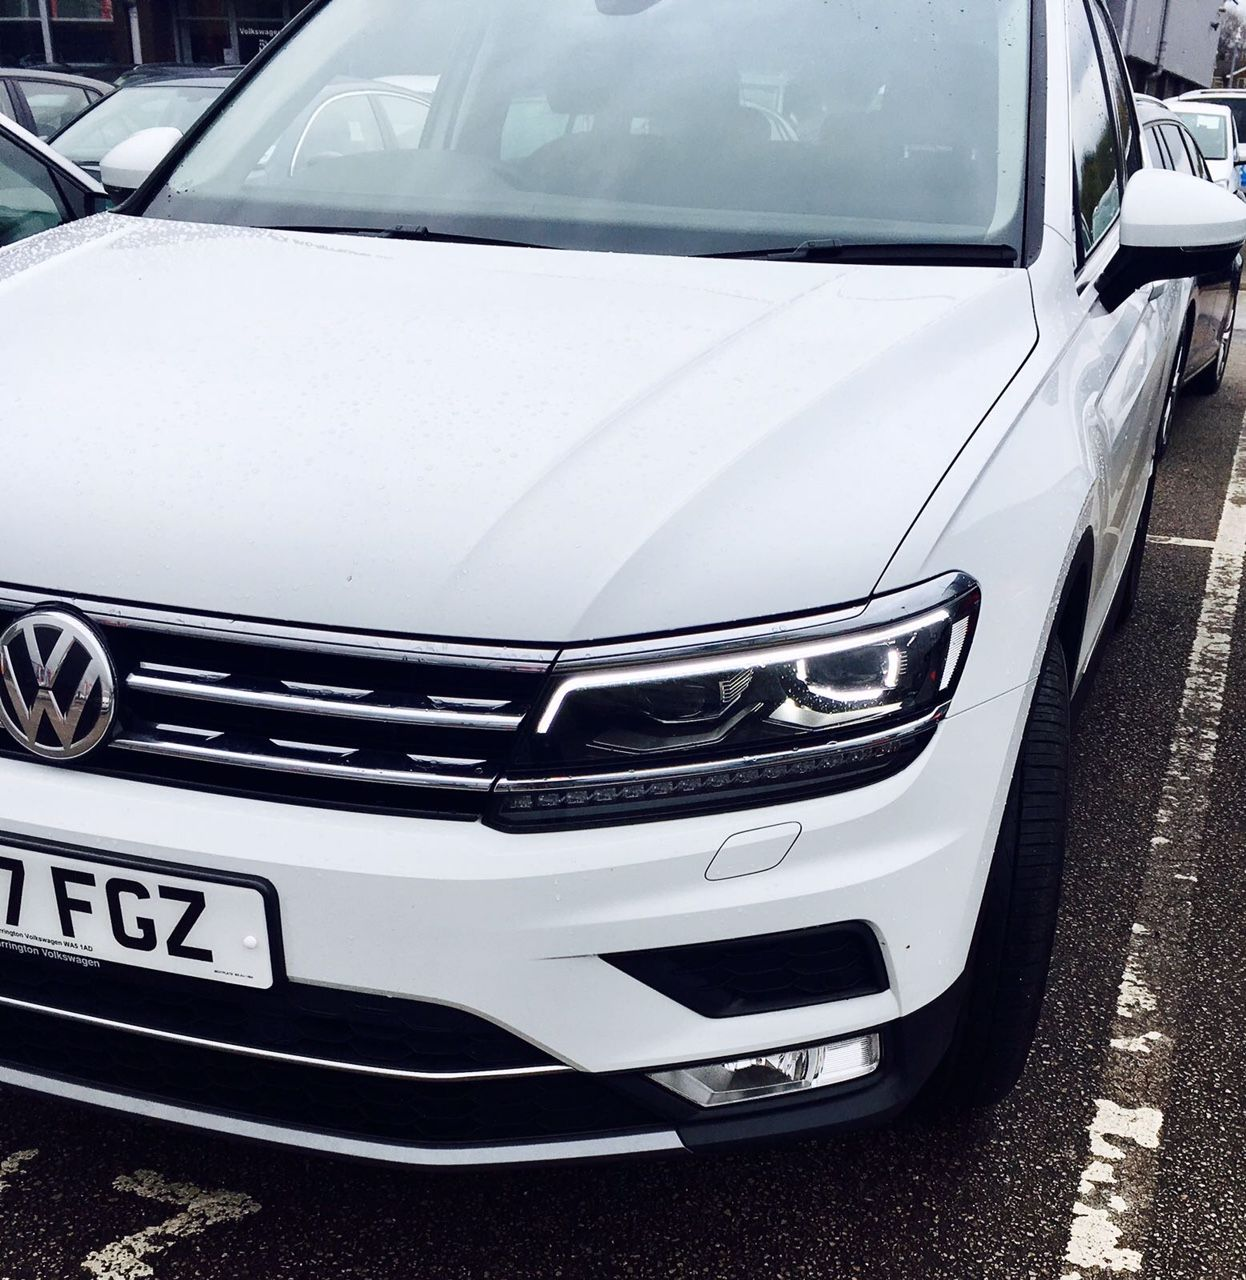 The Volkswagen Tiguan Carleasing Deal One Of The Many Cars And Vans Available To Lease From Www Carlease Uk Com Car Lease Volkswagen Lease Deals